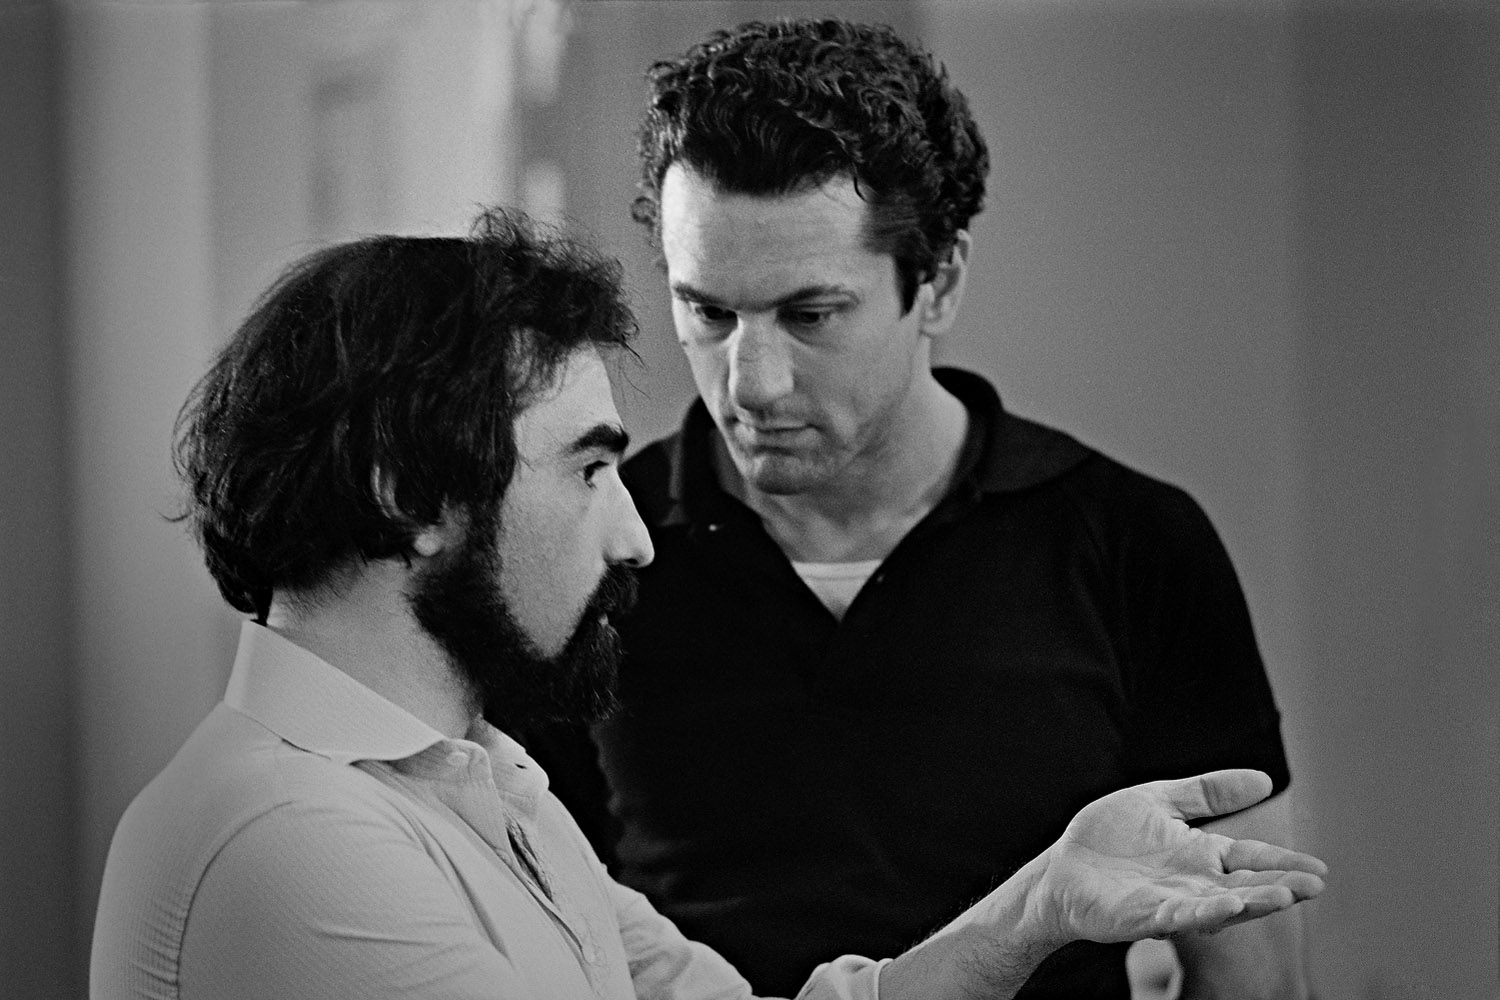 On set, with Martin Scorsese giving direction.